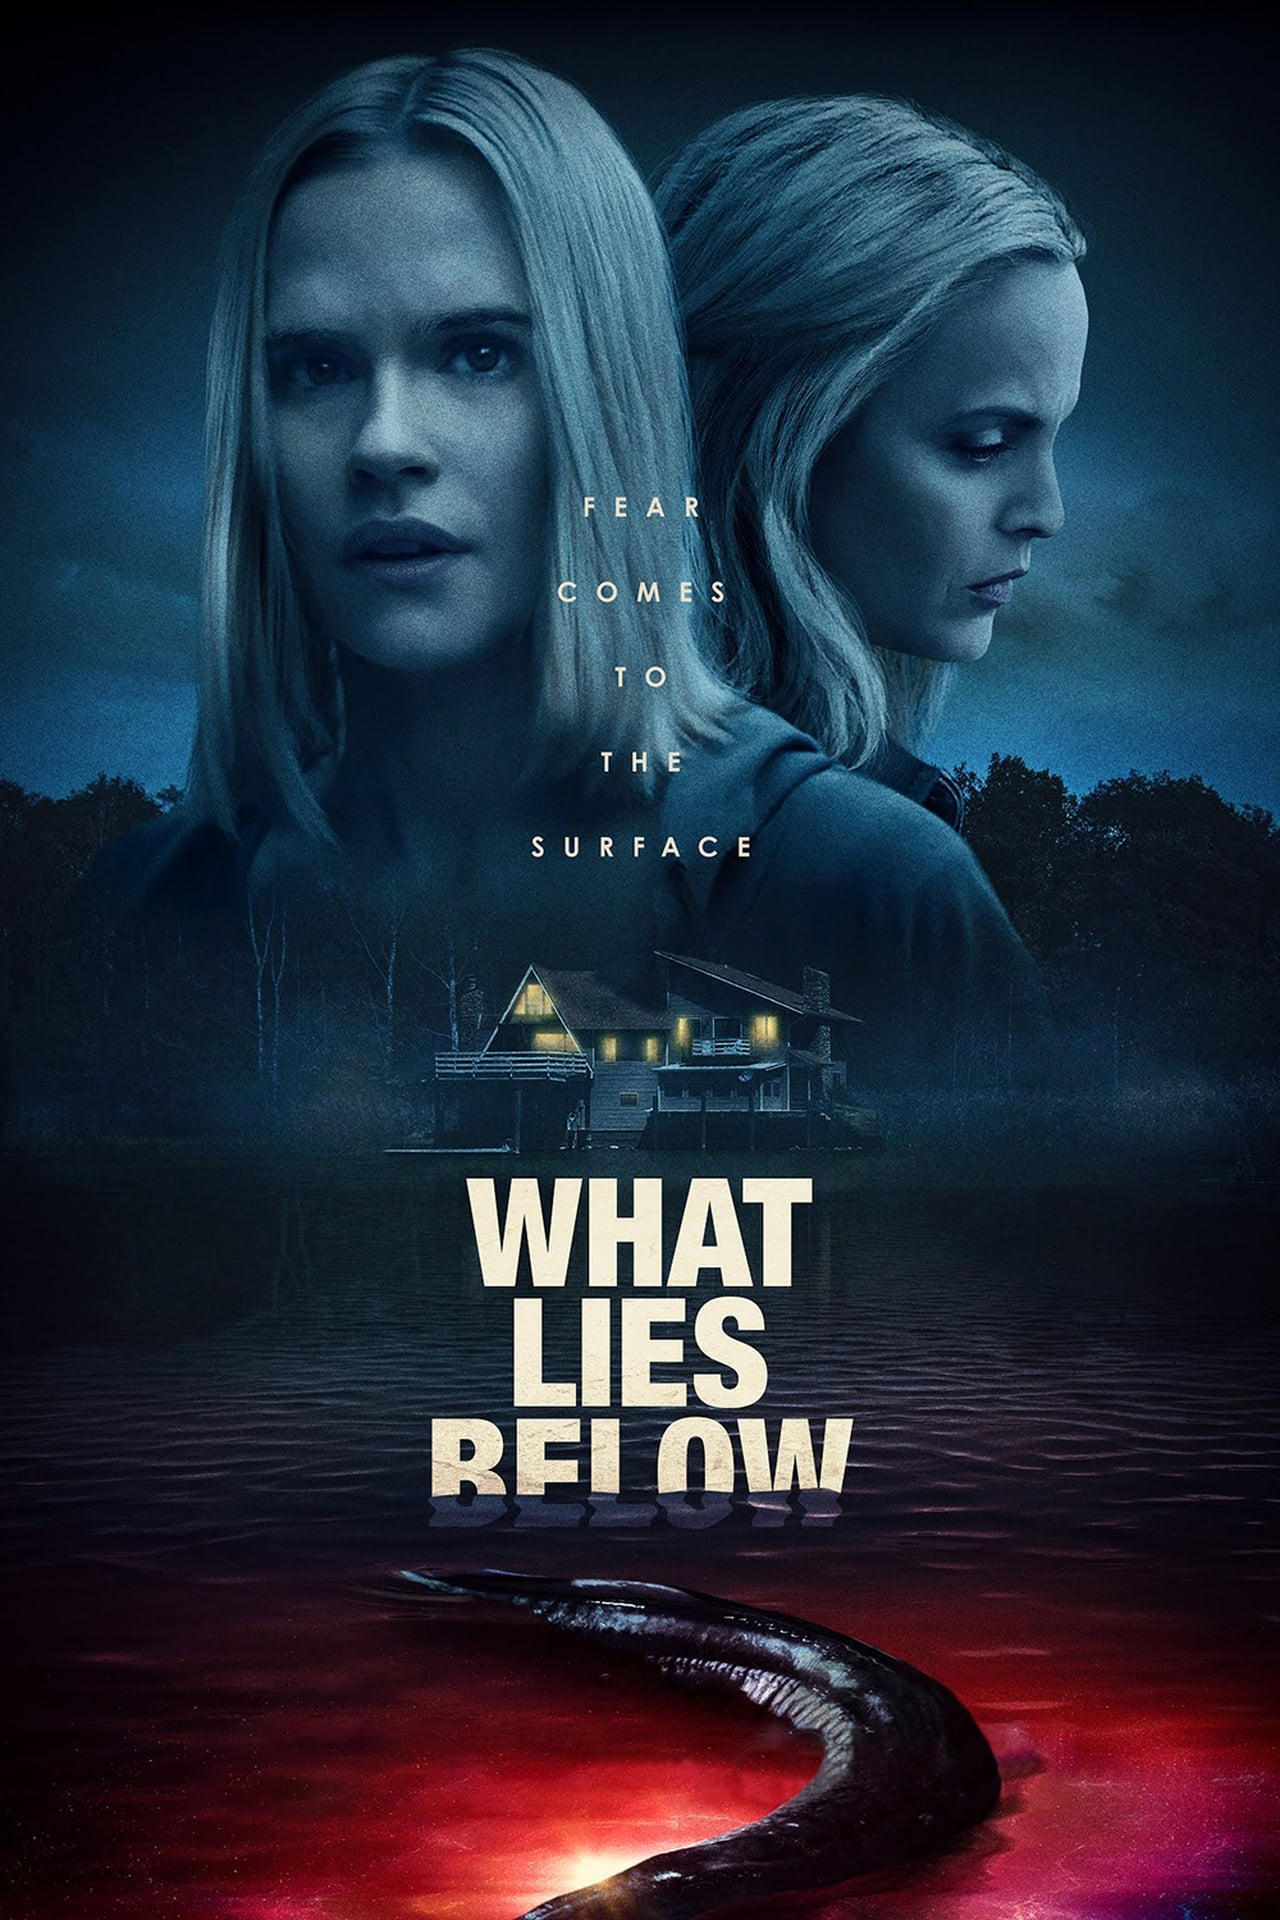 What Lies Below (2020) 720p WEBRip Dual Audio [Unofficial Dubbed] Hindi-English x264 AAC